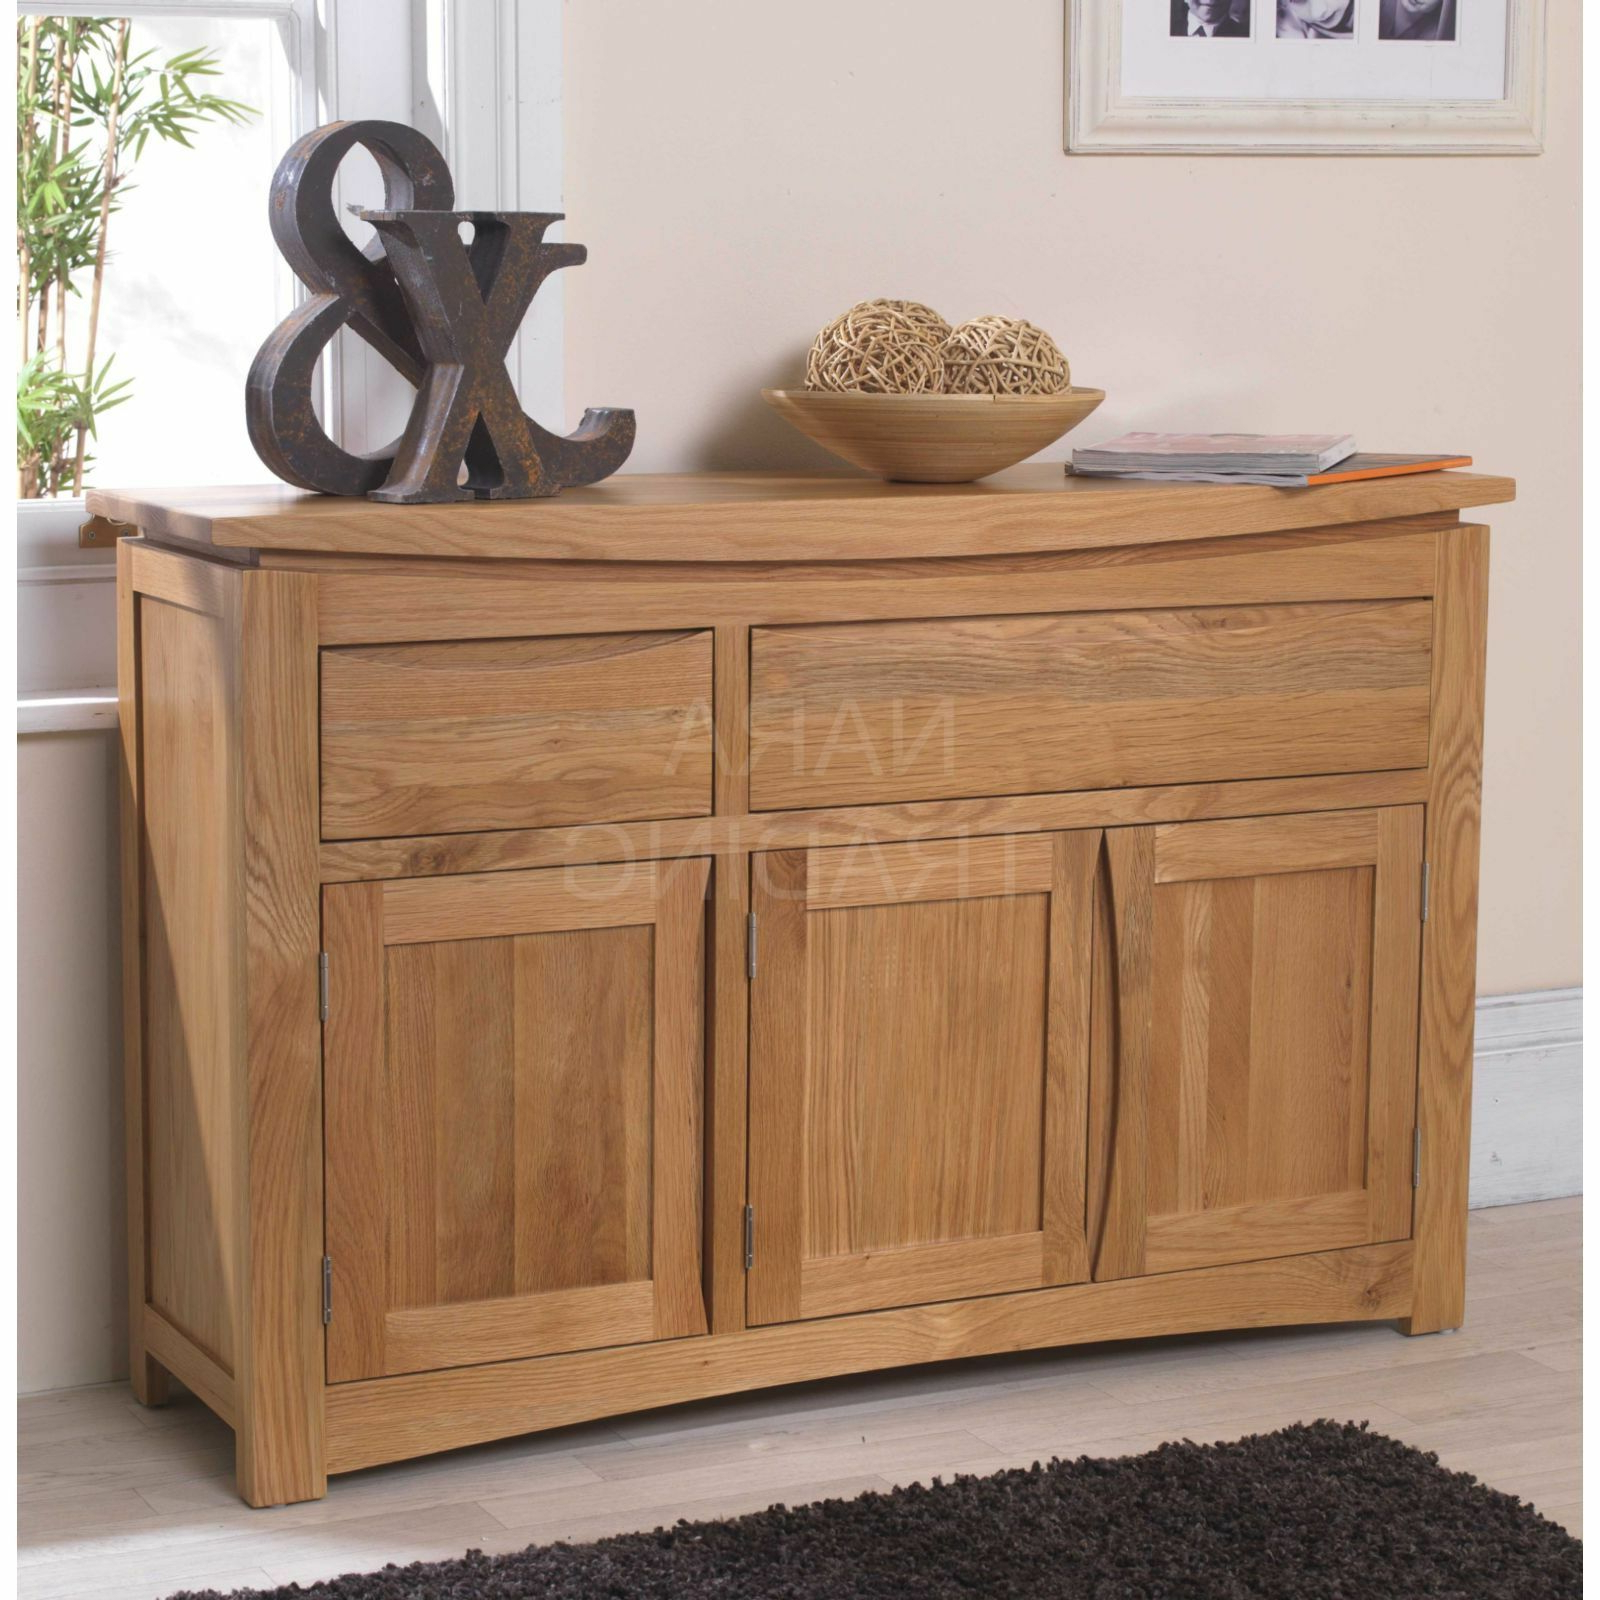 Clifton Sideboards With Best And Newest Crescent Solid Oak Dining Room Furniture Large Storage Sideboard (View 6 of 20)